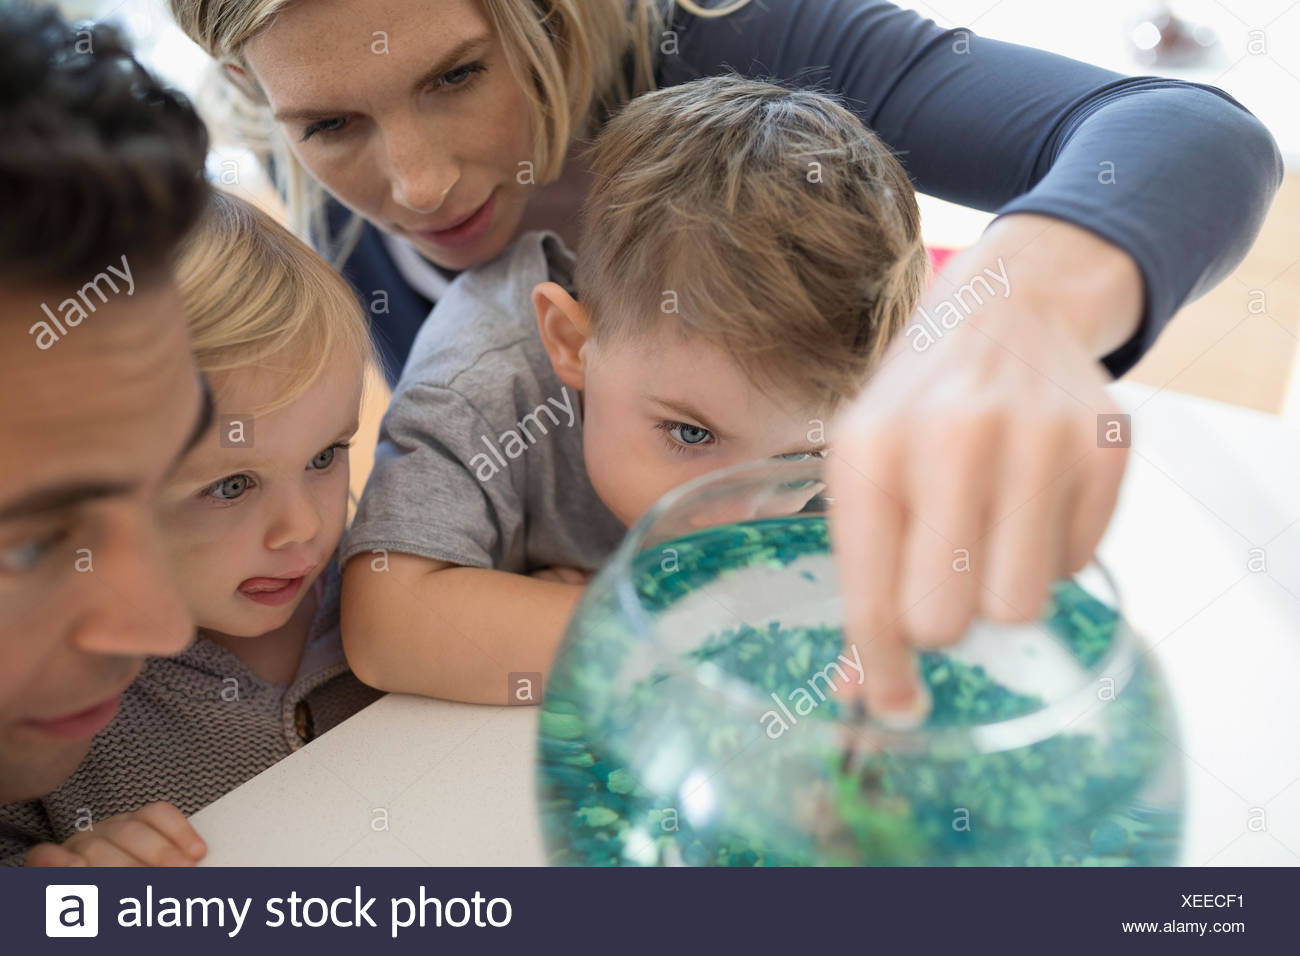 Young family feeding goldfish in bowl - Stock Image